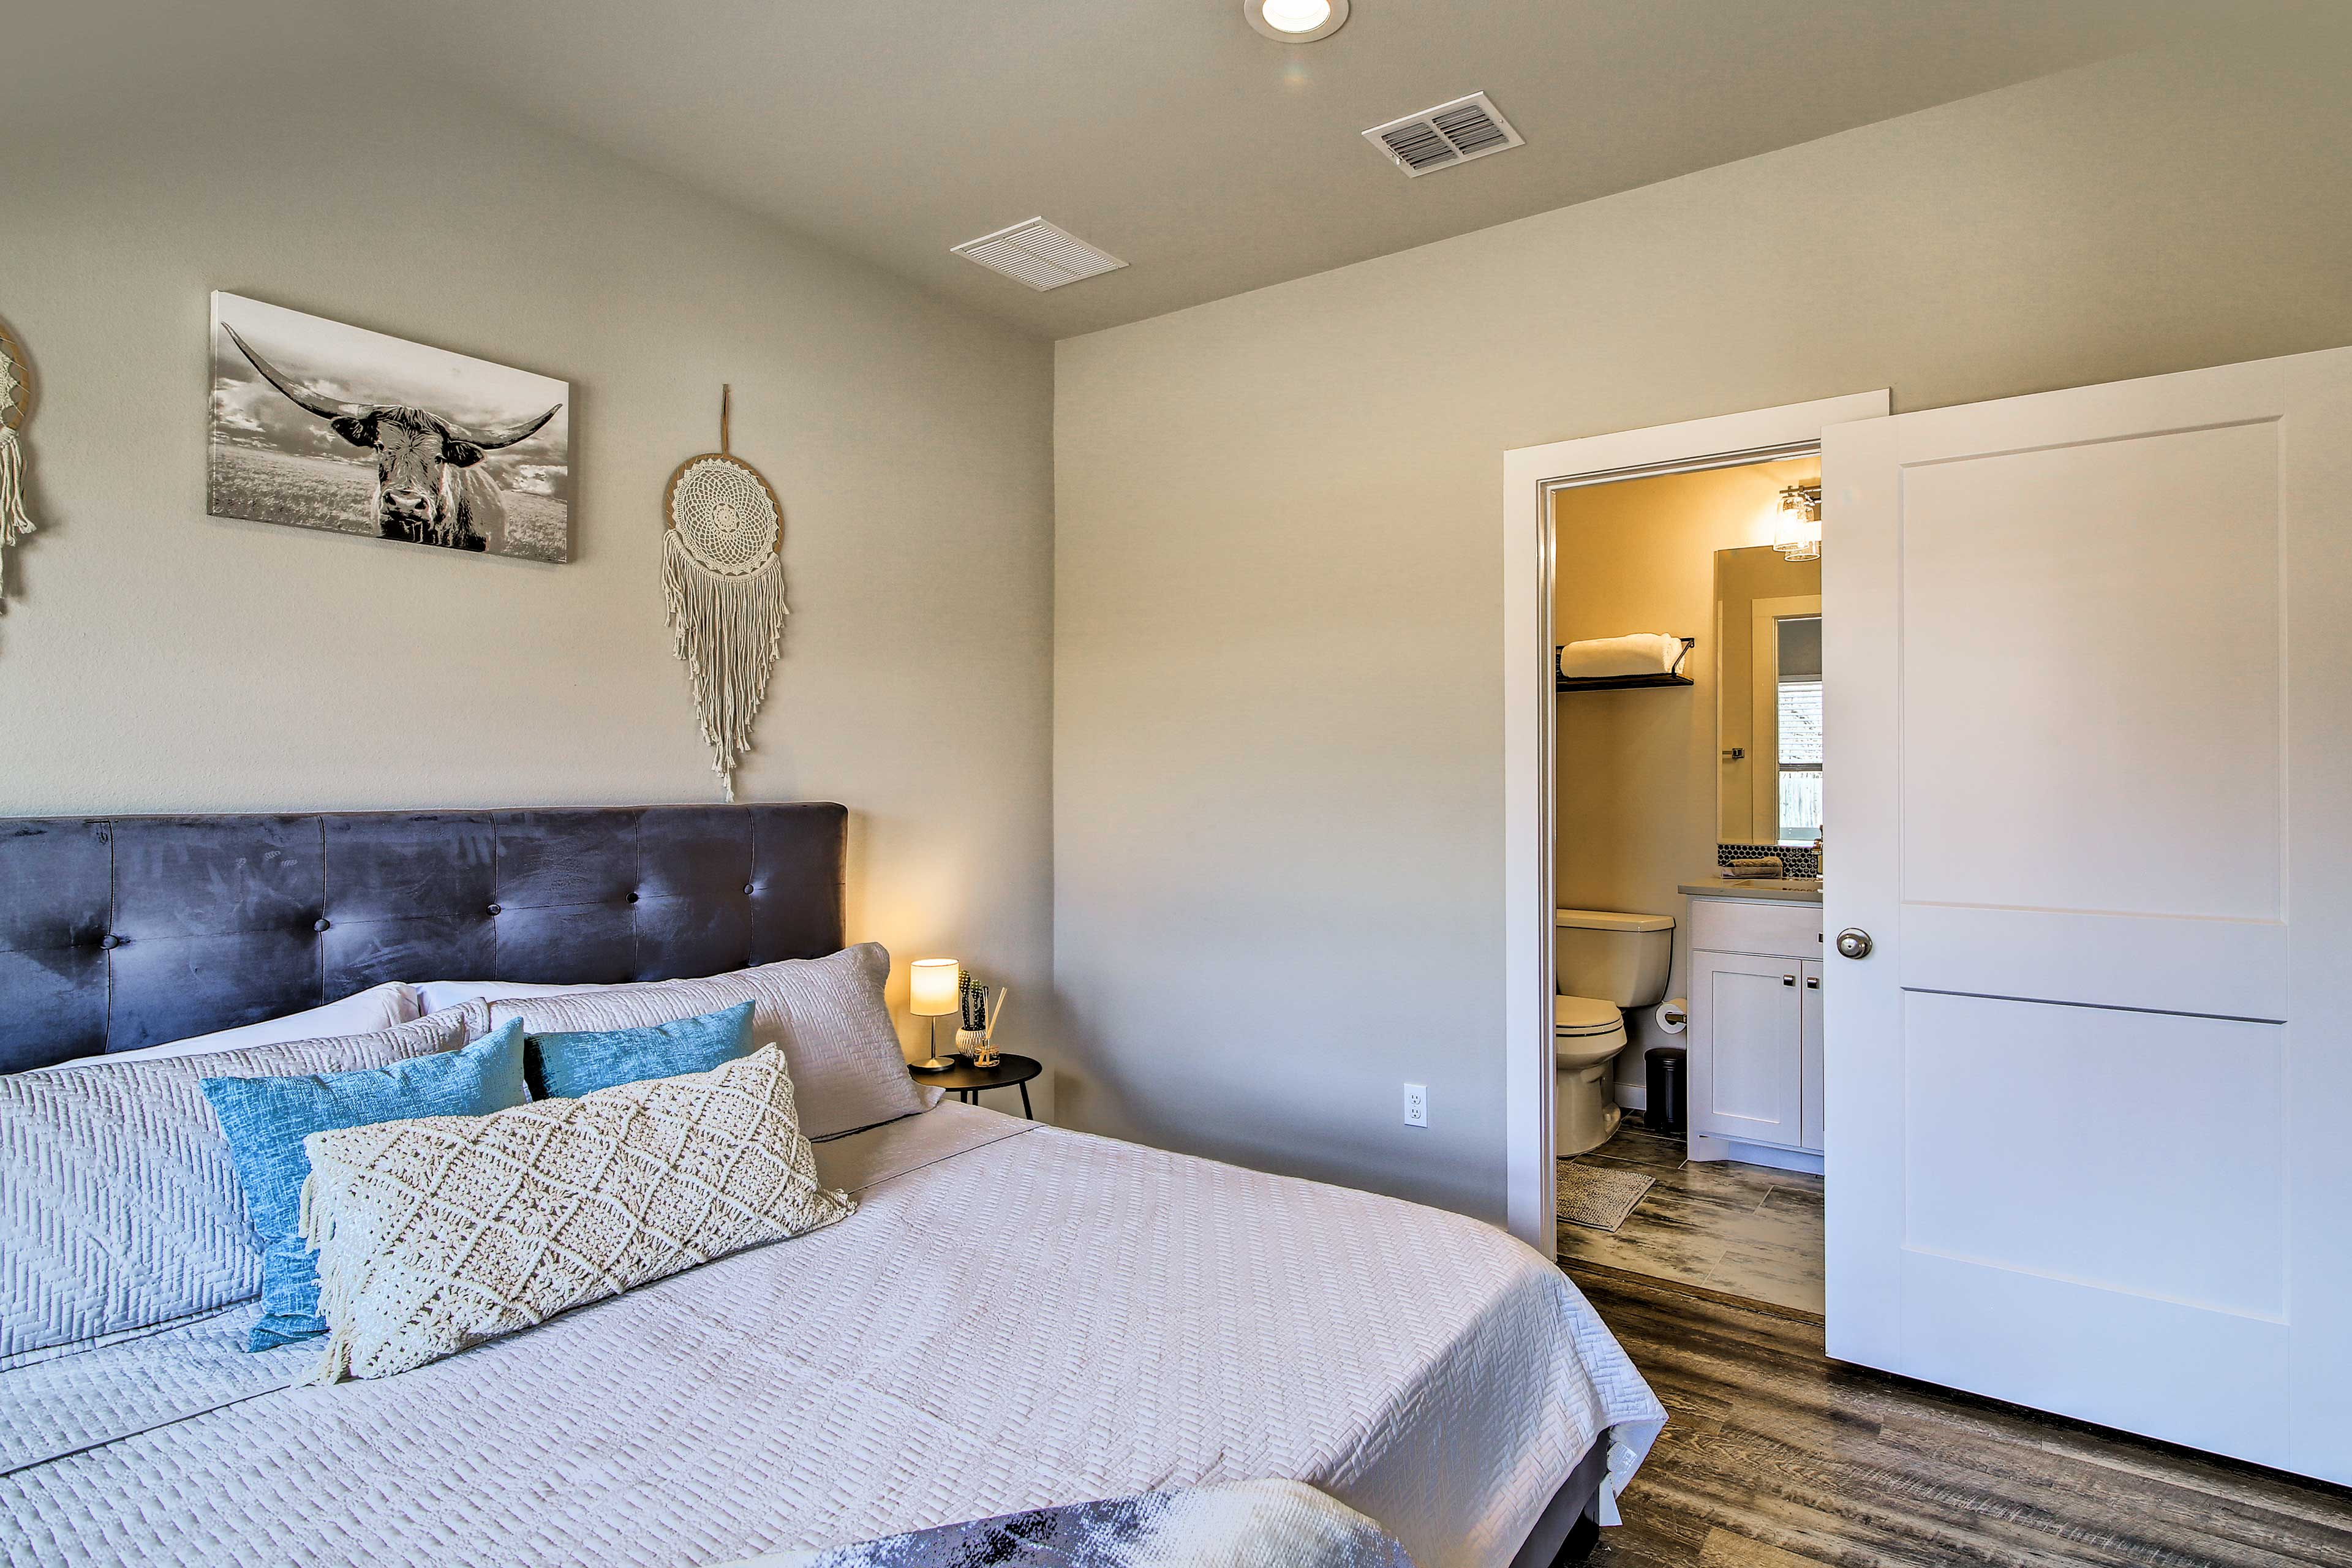 Enjoy the added privacy of an en-suite bathroom.